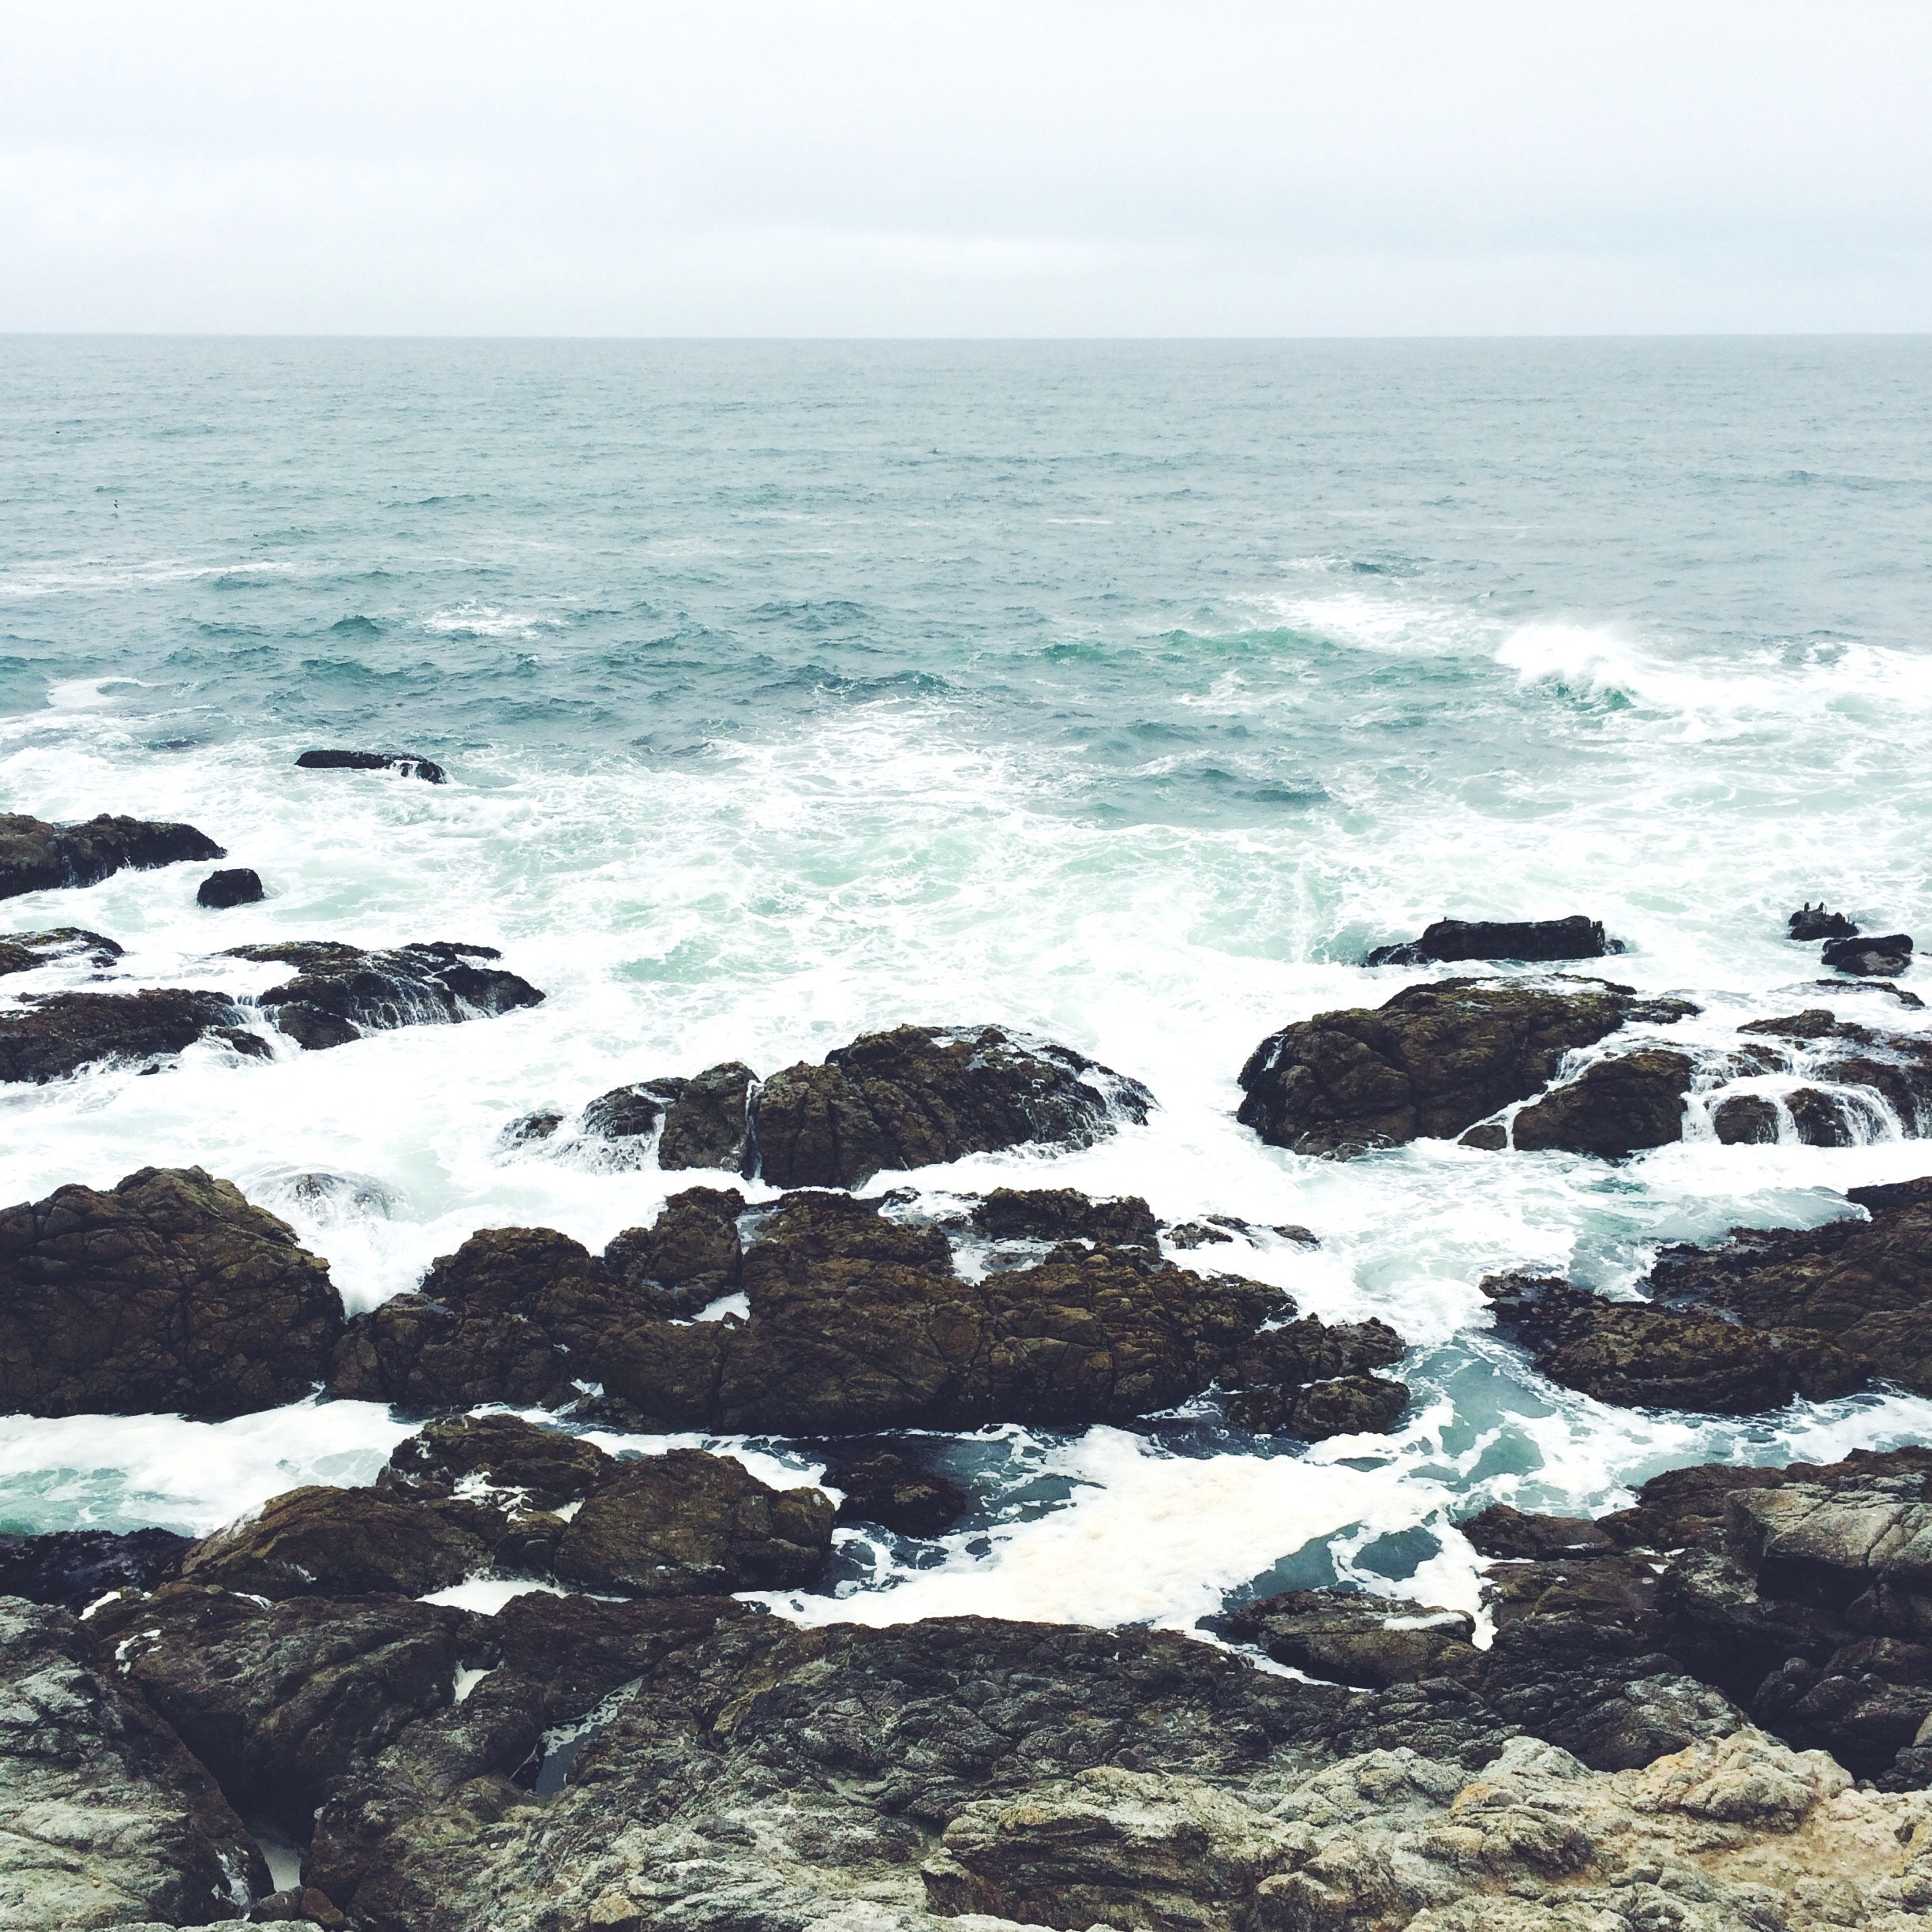 [Photo of the ocean with the horizon in the background and waves breaking over large rocks in the foreground. Photo by Mia Mingus.]